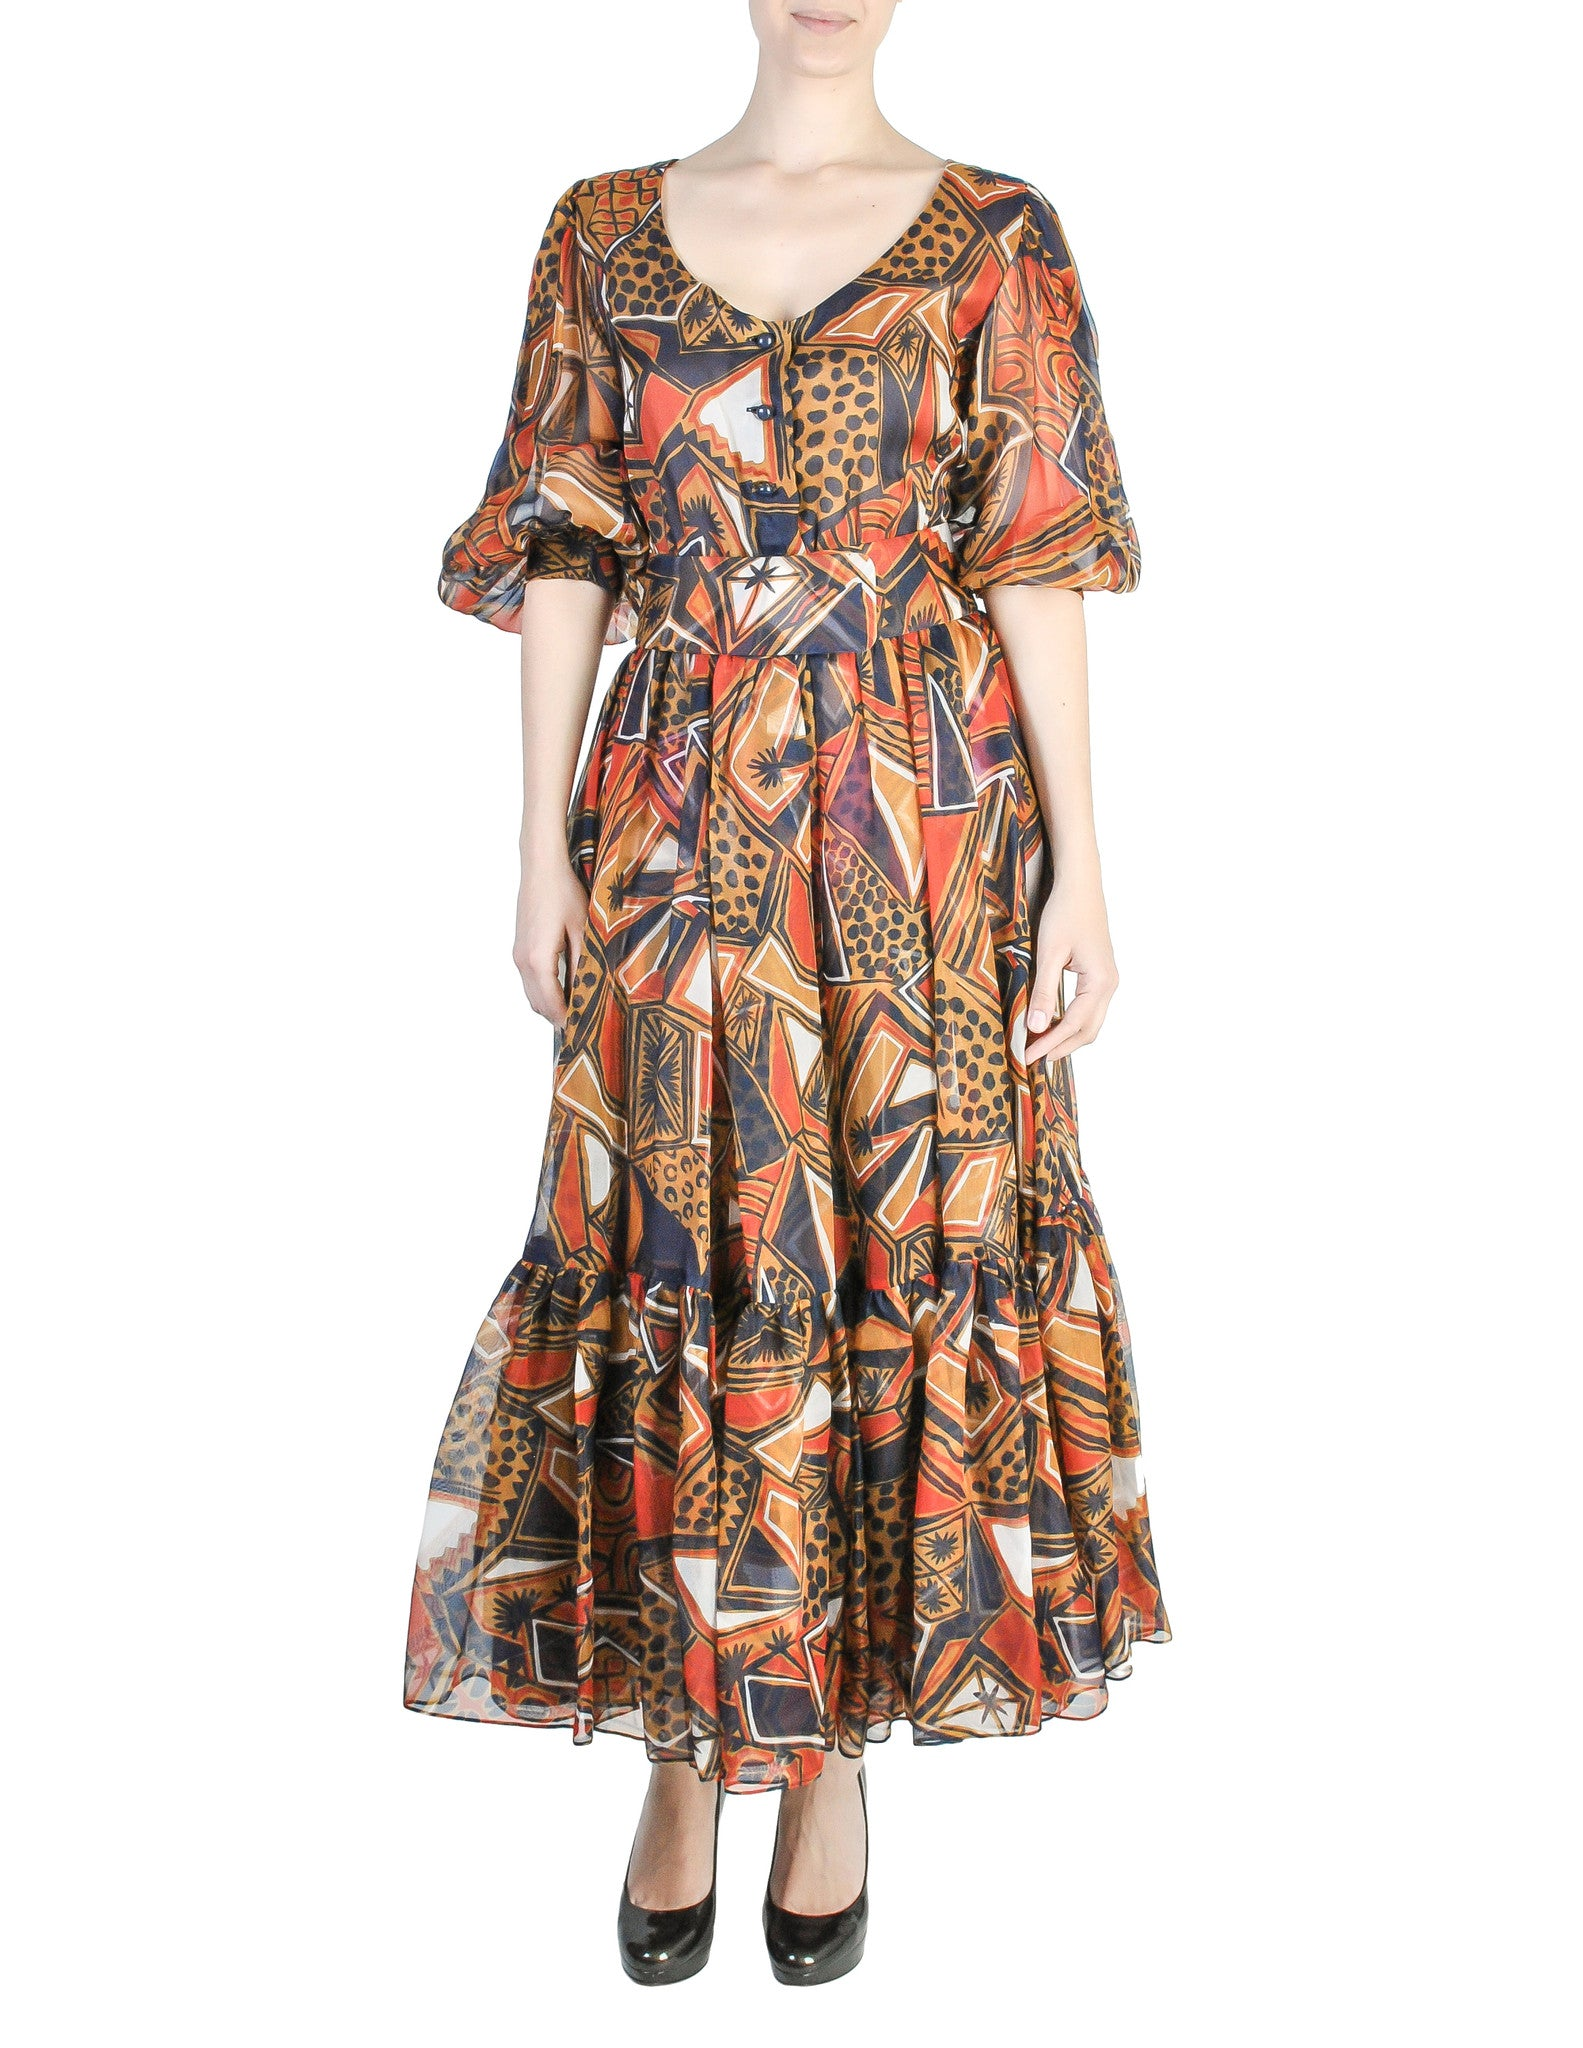 11a4e76d2b Saint Laurent Vintage Tribal Print Chiffon Maxi Dress - Amarcord Vintage  Fashion - 1